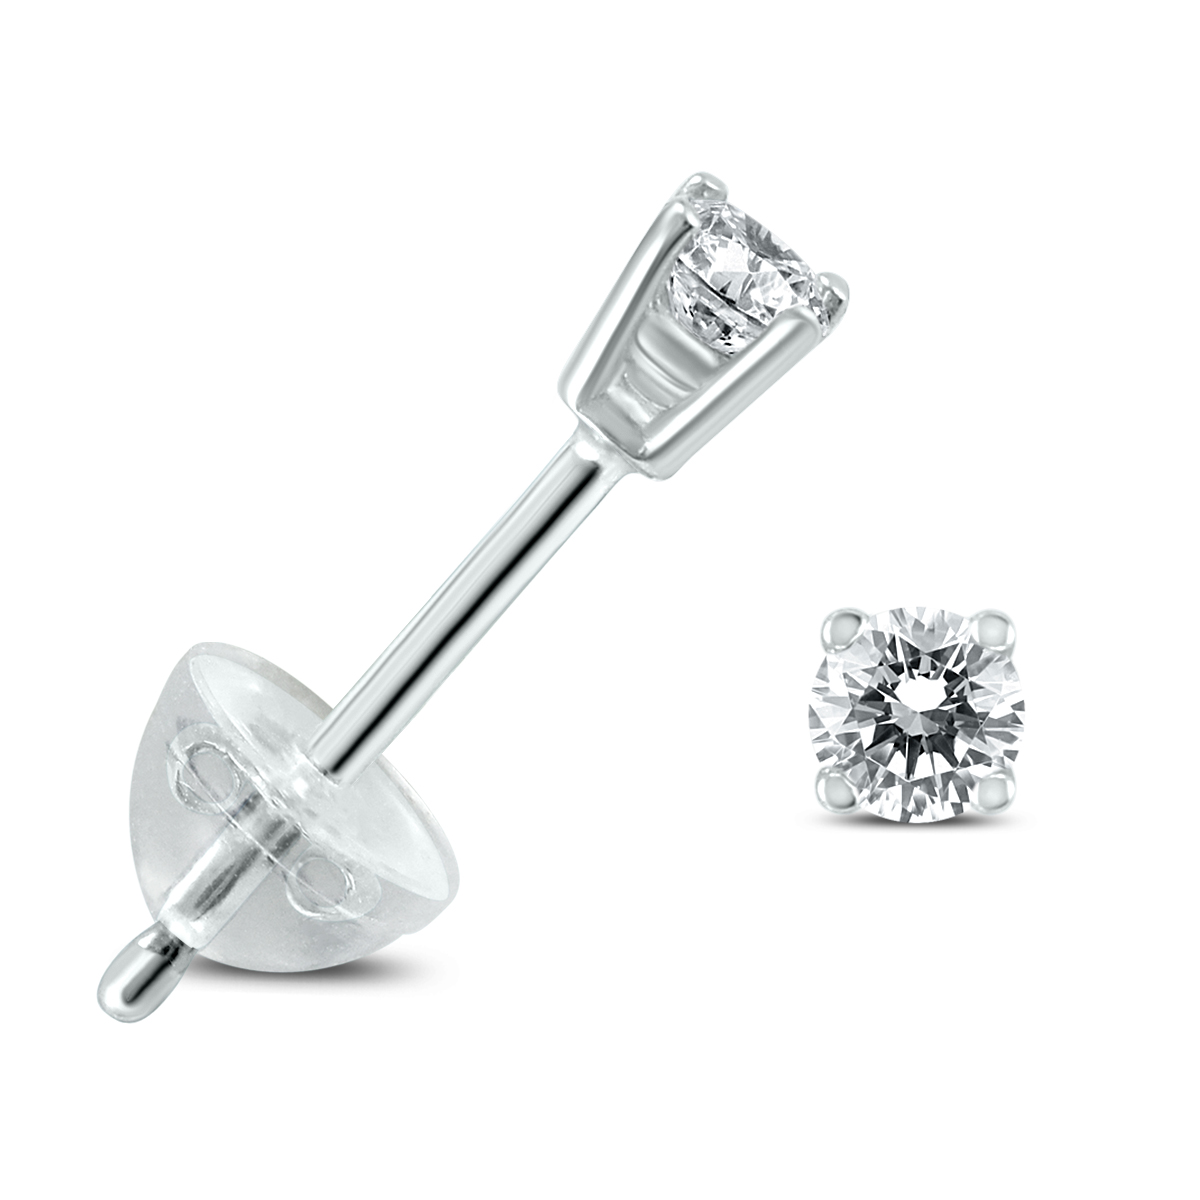 .04CTW Round Diamond Solitaire Stud Earrings In 14k White Gold with Silicon Backs